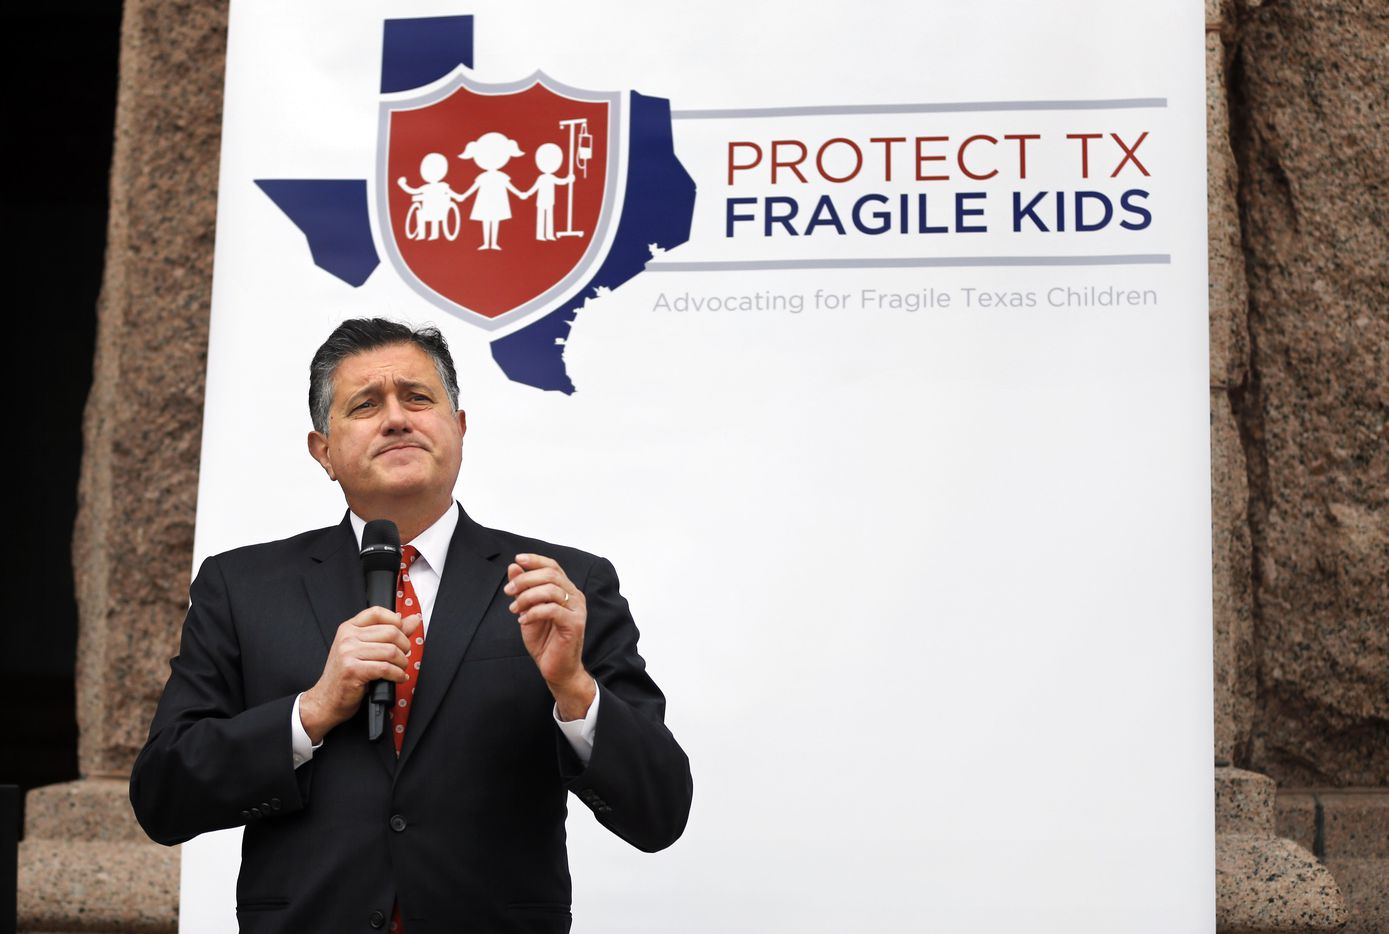 Texas Rep. Richard Raymond D-Laredo speaks to those gathered for a rally hosted by Protect Fragile TX Children outside the Texas State Capitol, Tuesday, February 26, 2019.